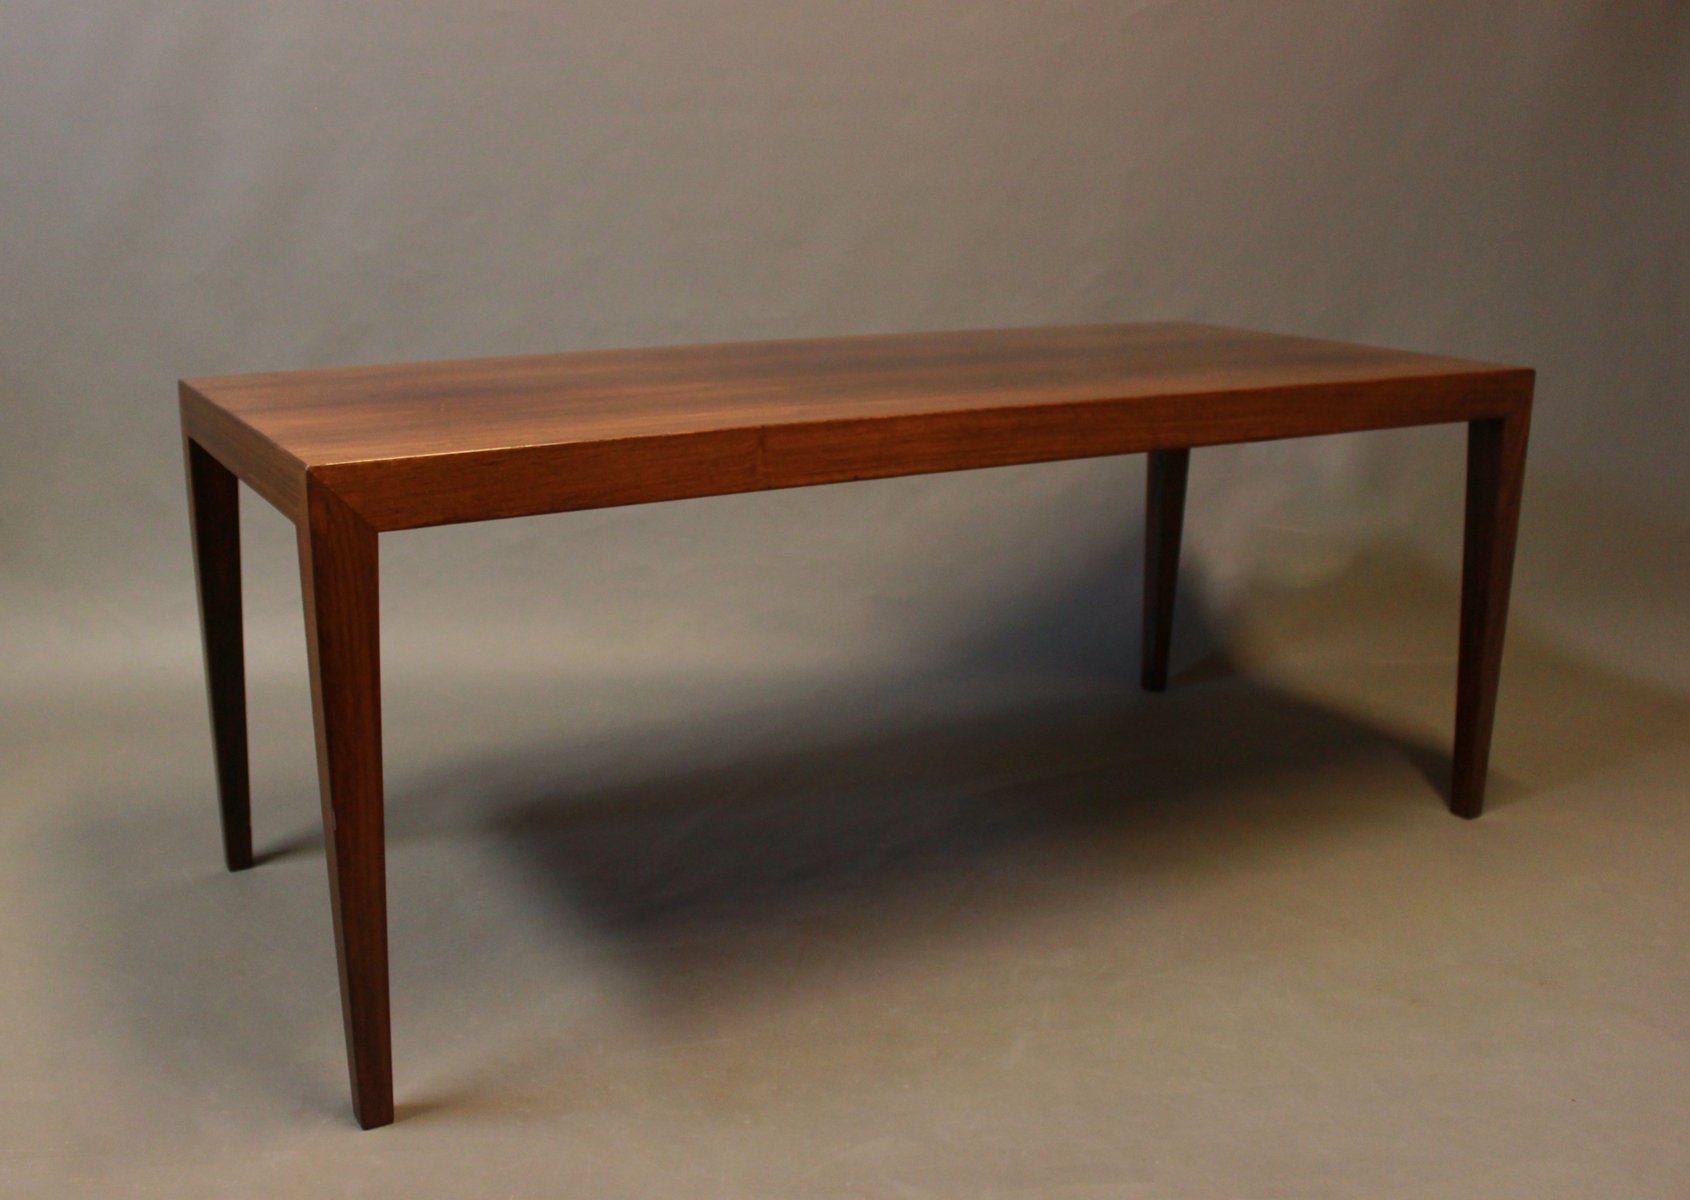 Danish Coffee Table In Rosewood By Haslev M Belsnedkeri 1960s For Sale At Pamono